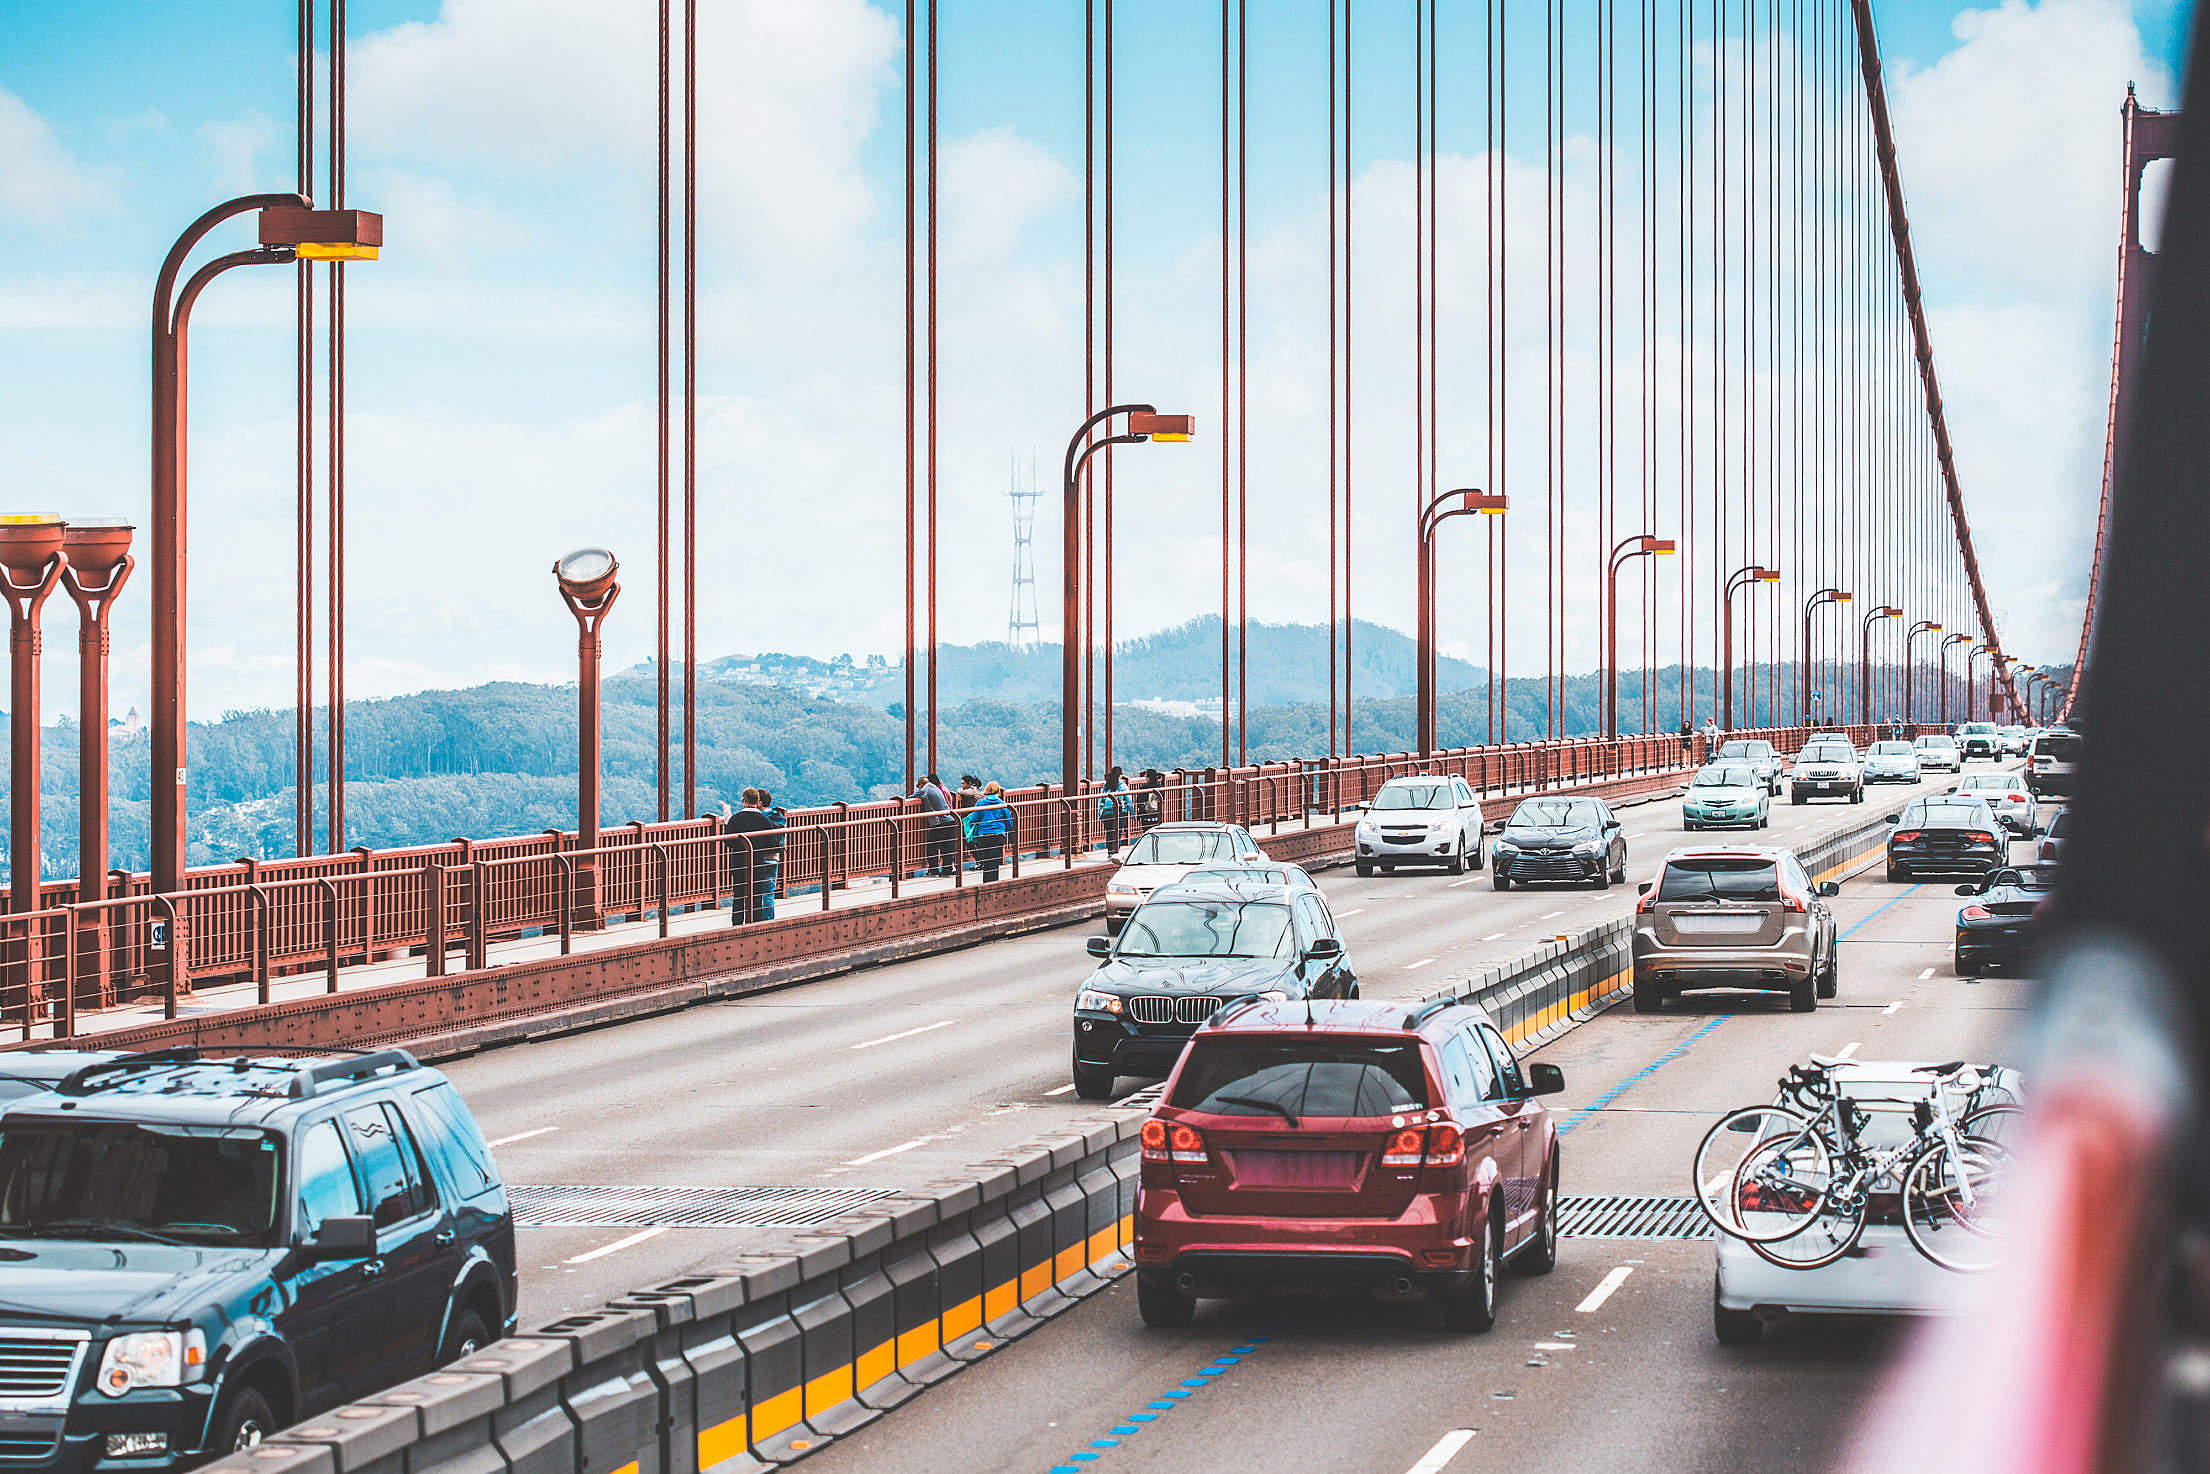 Traffic: a Lot of Cars Driving Across The Golden Gate Bridge Free Stock Photo